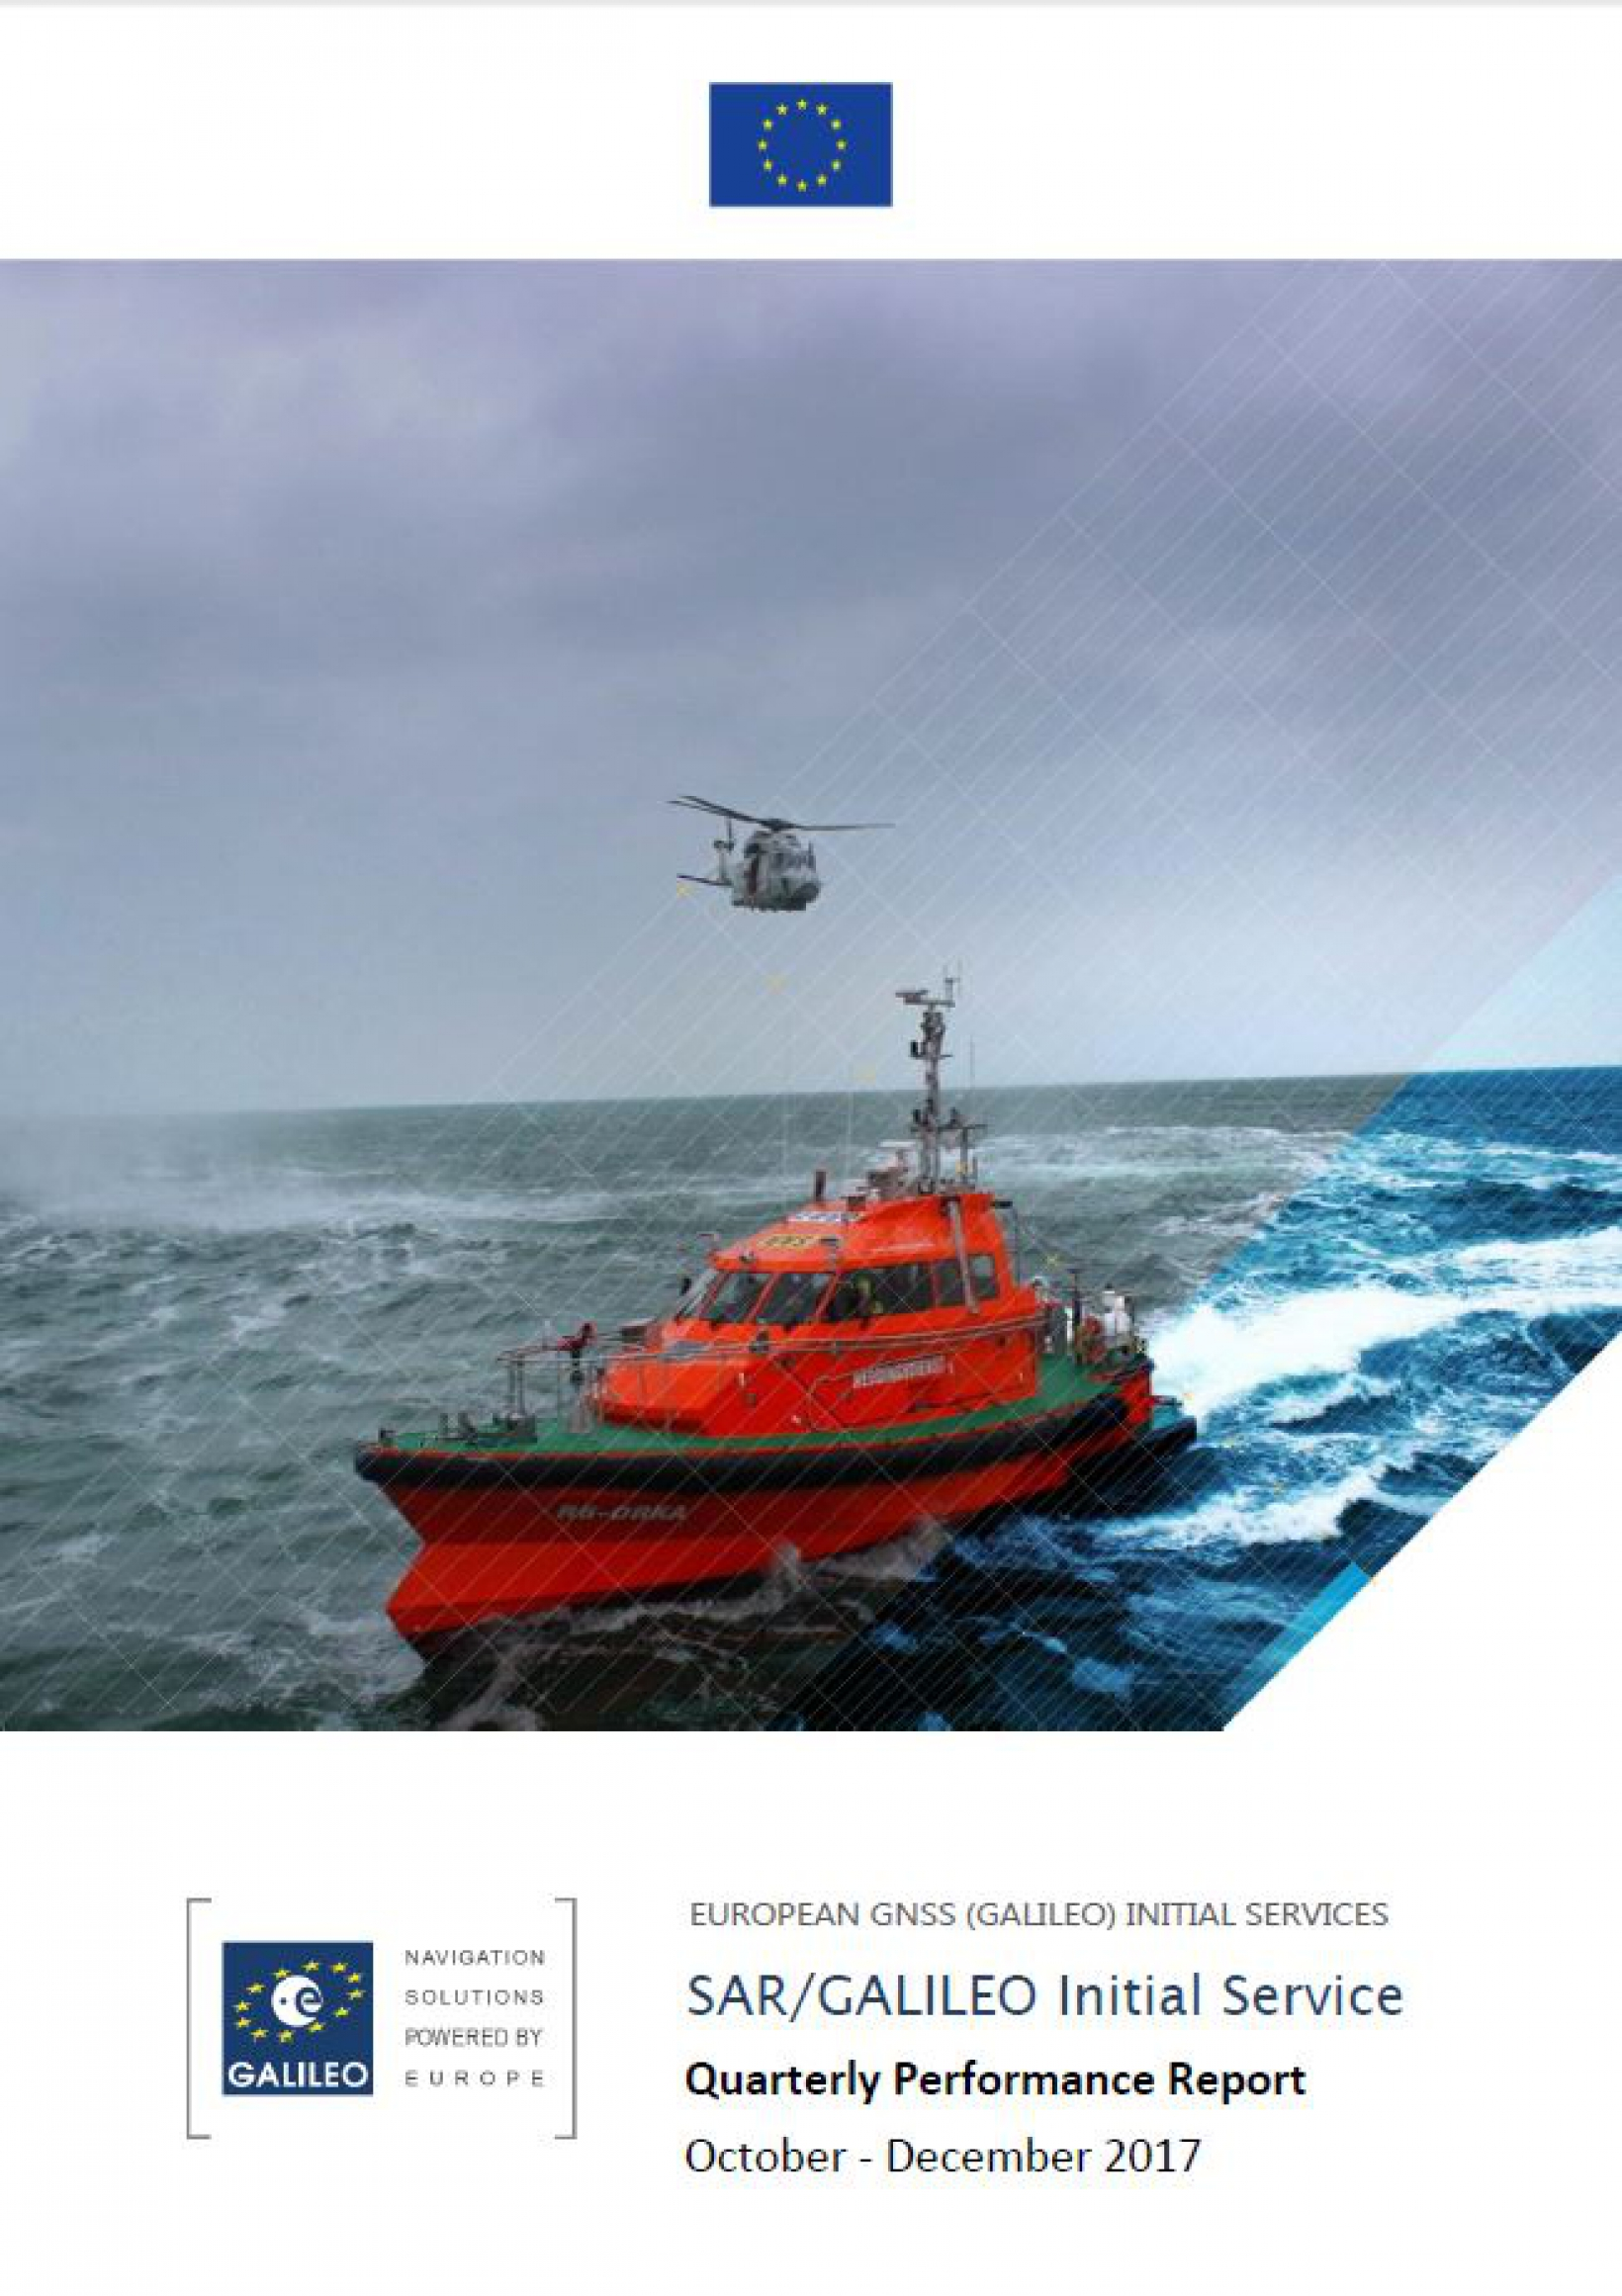 Galileo Initial Open Service and SAR Service performance figures exceed Minimum Performance Level targets in Q4.